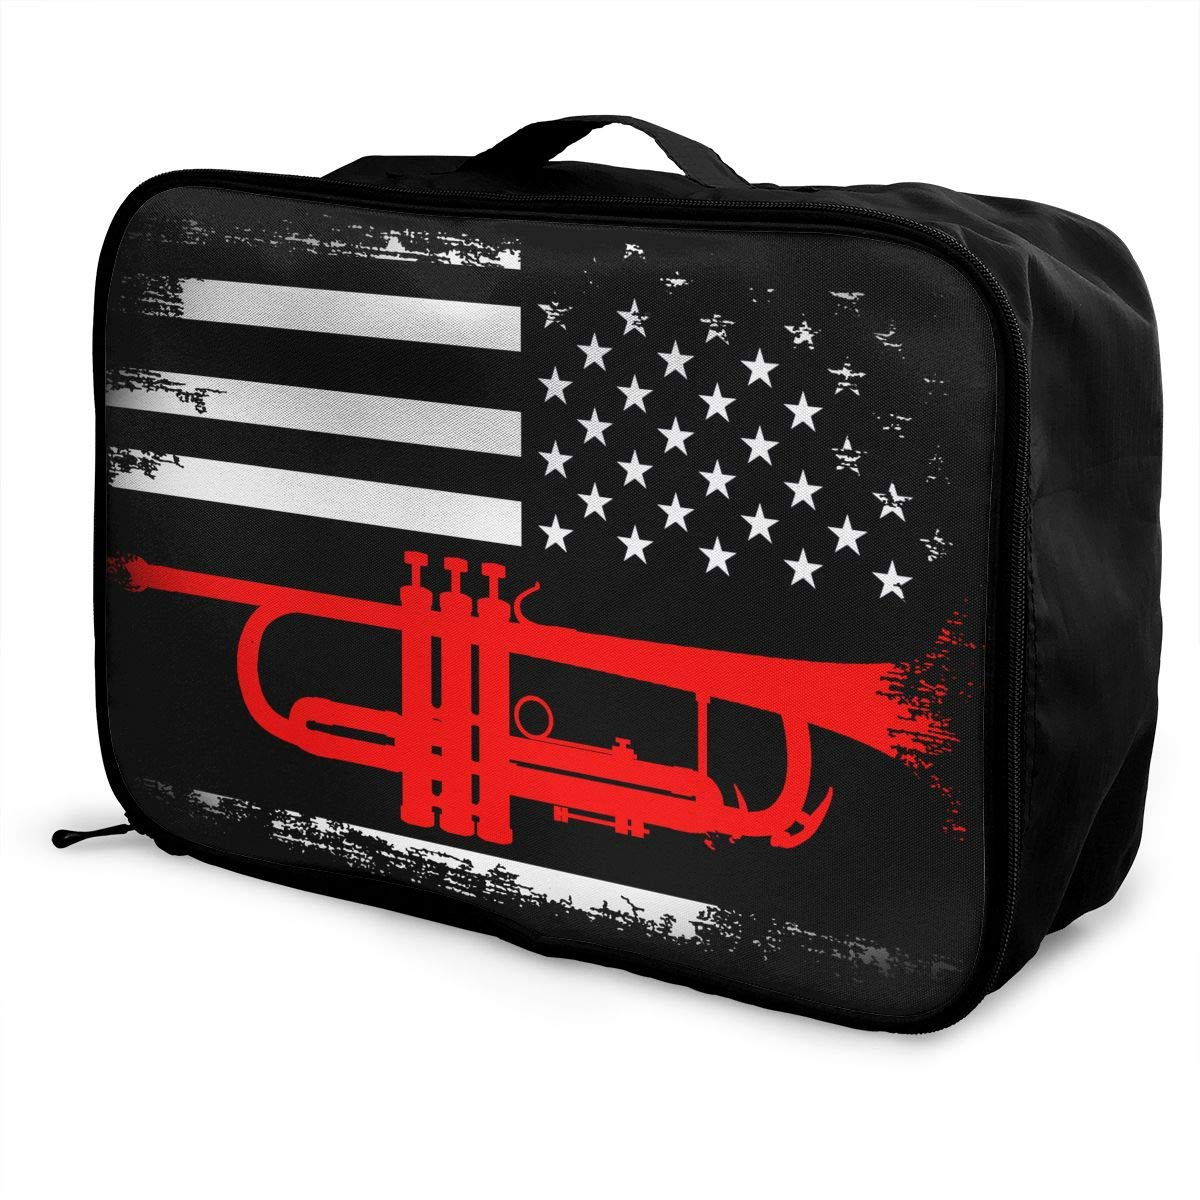 YueLJB Trumpet American Flag Lightweight Large Capacity Portable Luggage Bag Travel Duffel Bag Storage Carry Luggage Duffle Tote Bag